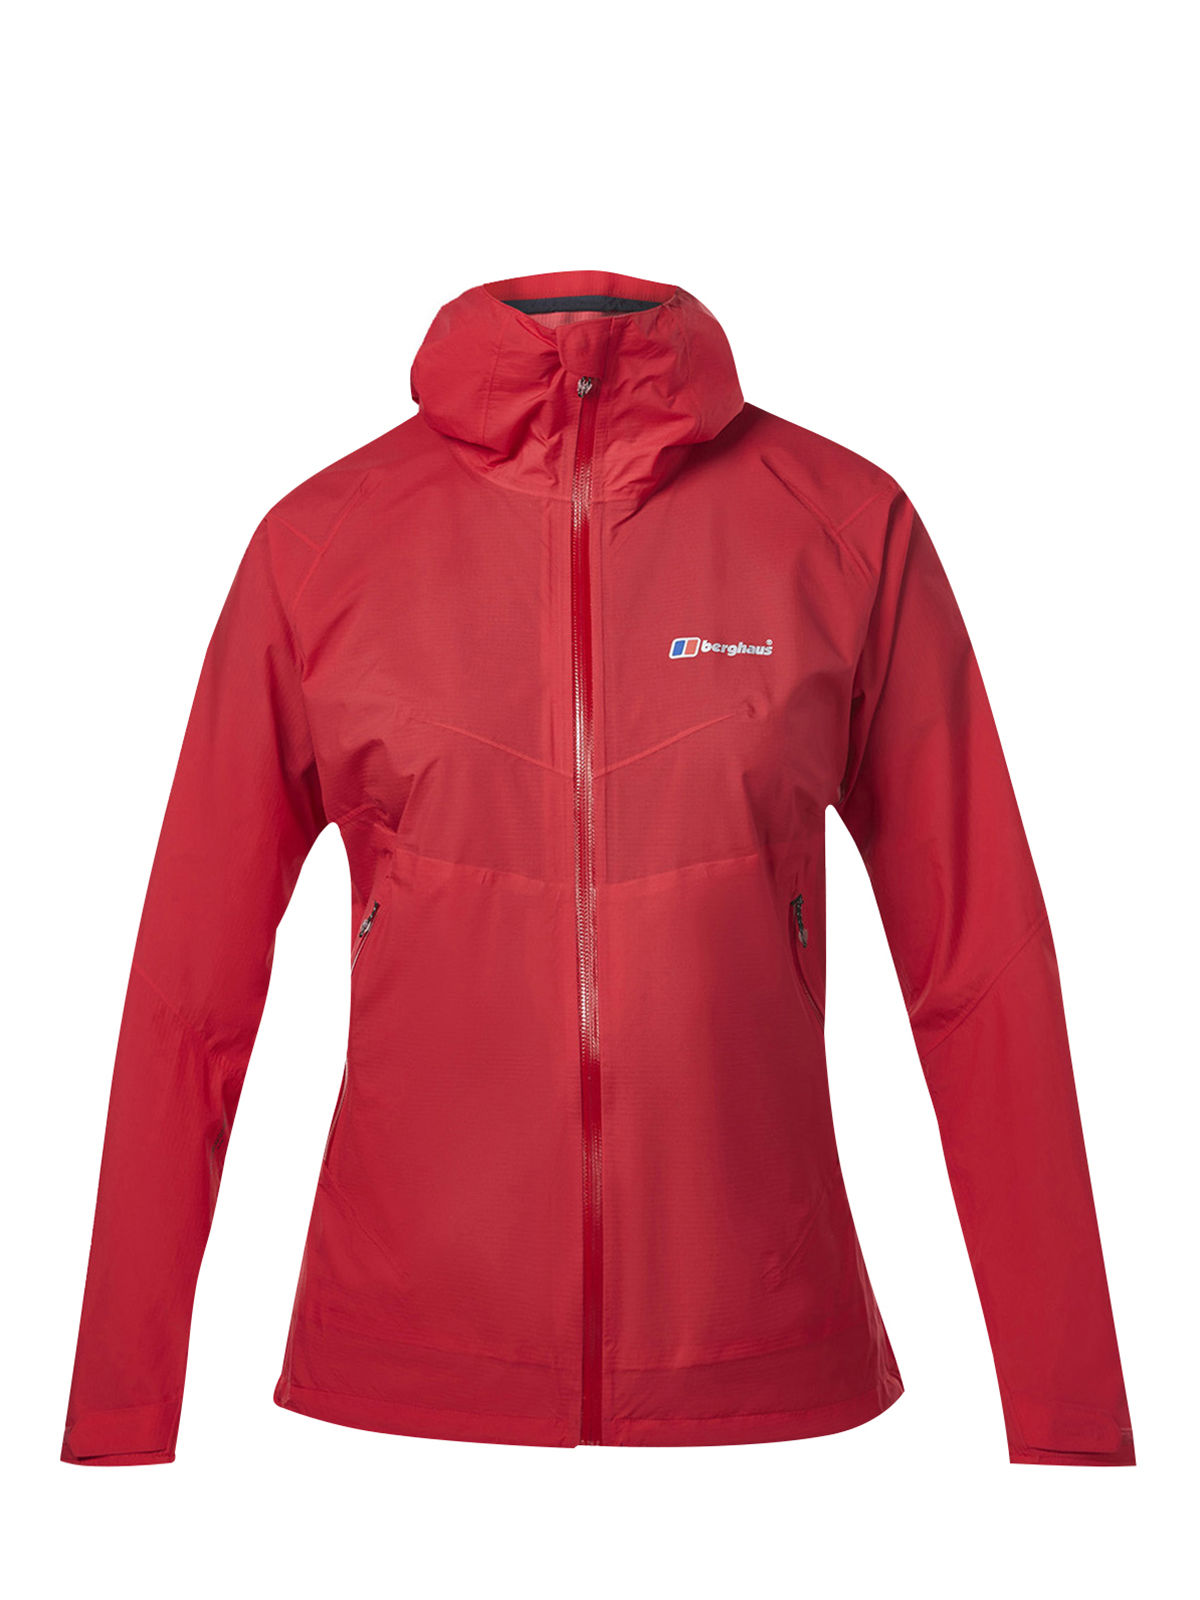 Berghaus Womens Fastpacking Shell Jacket